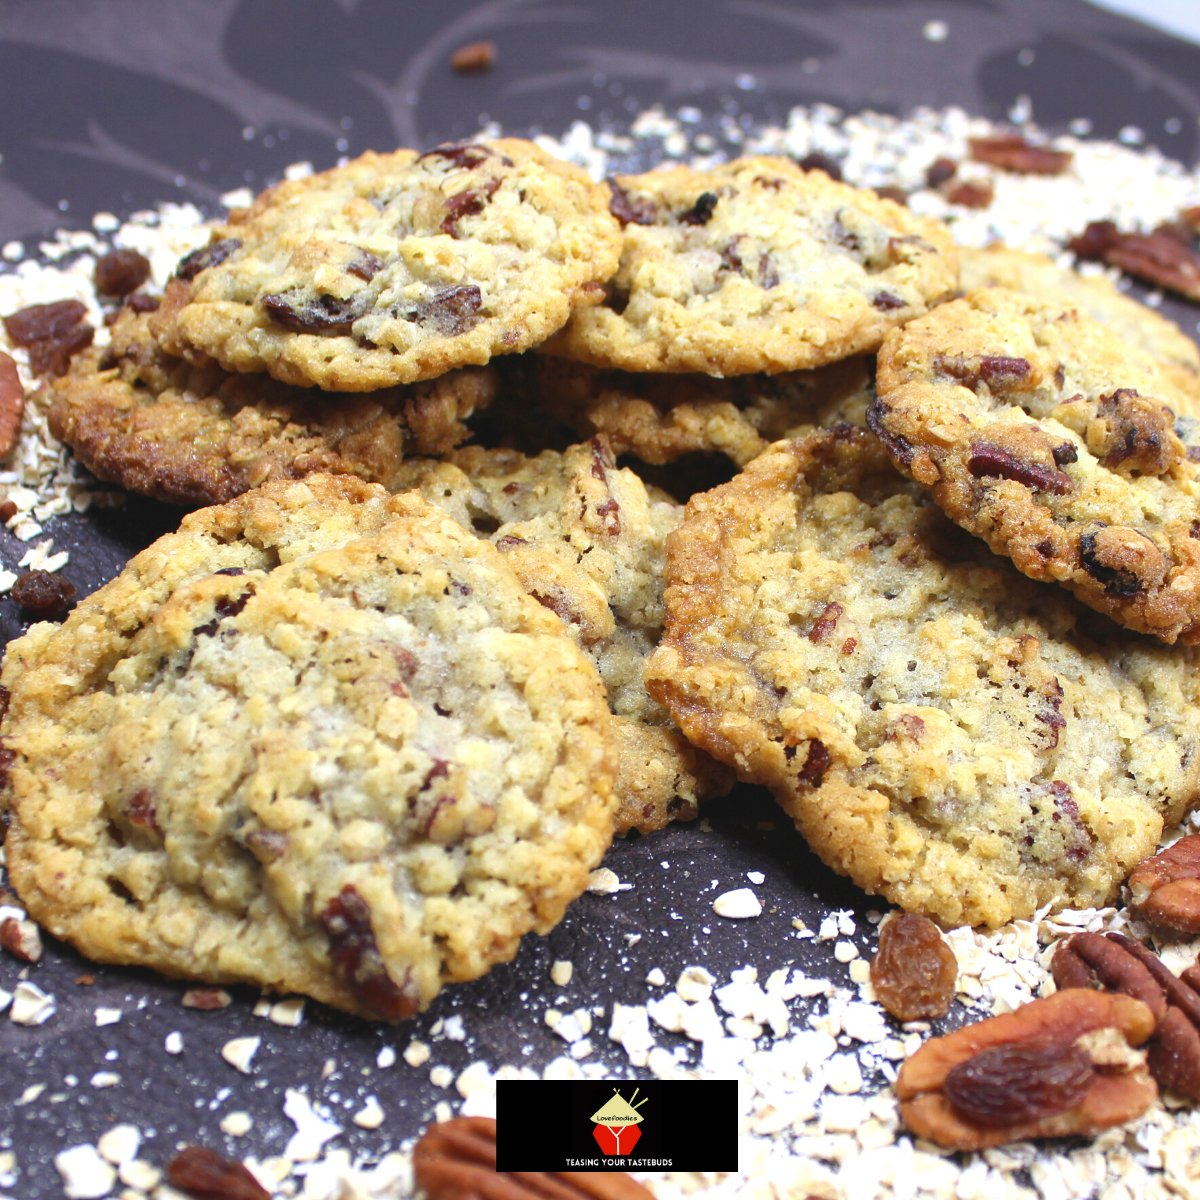 Pecan and Raisin Oatmeal CookiesF